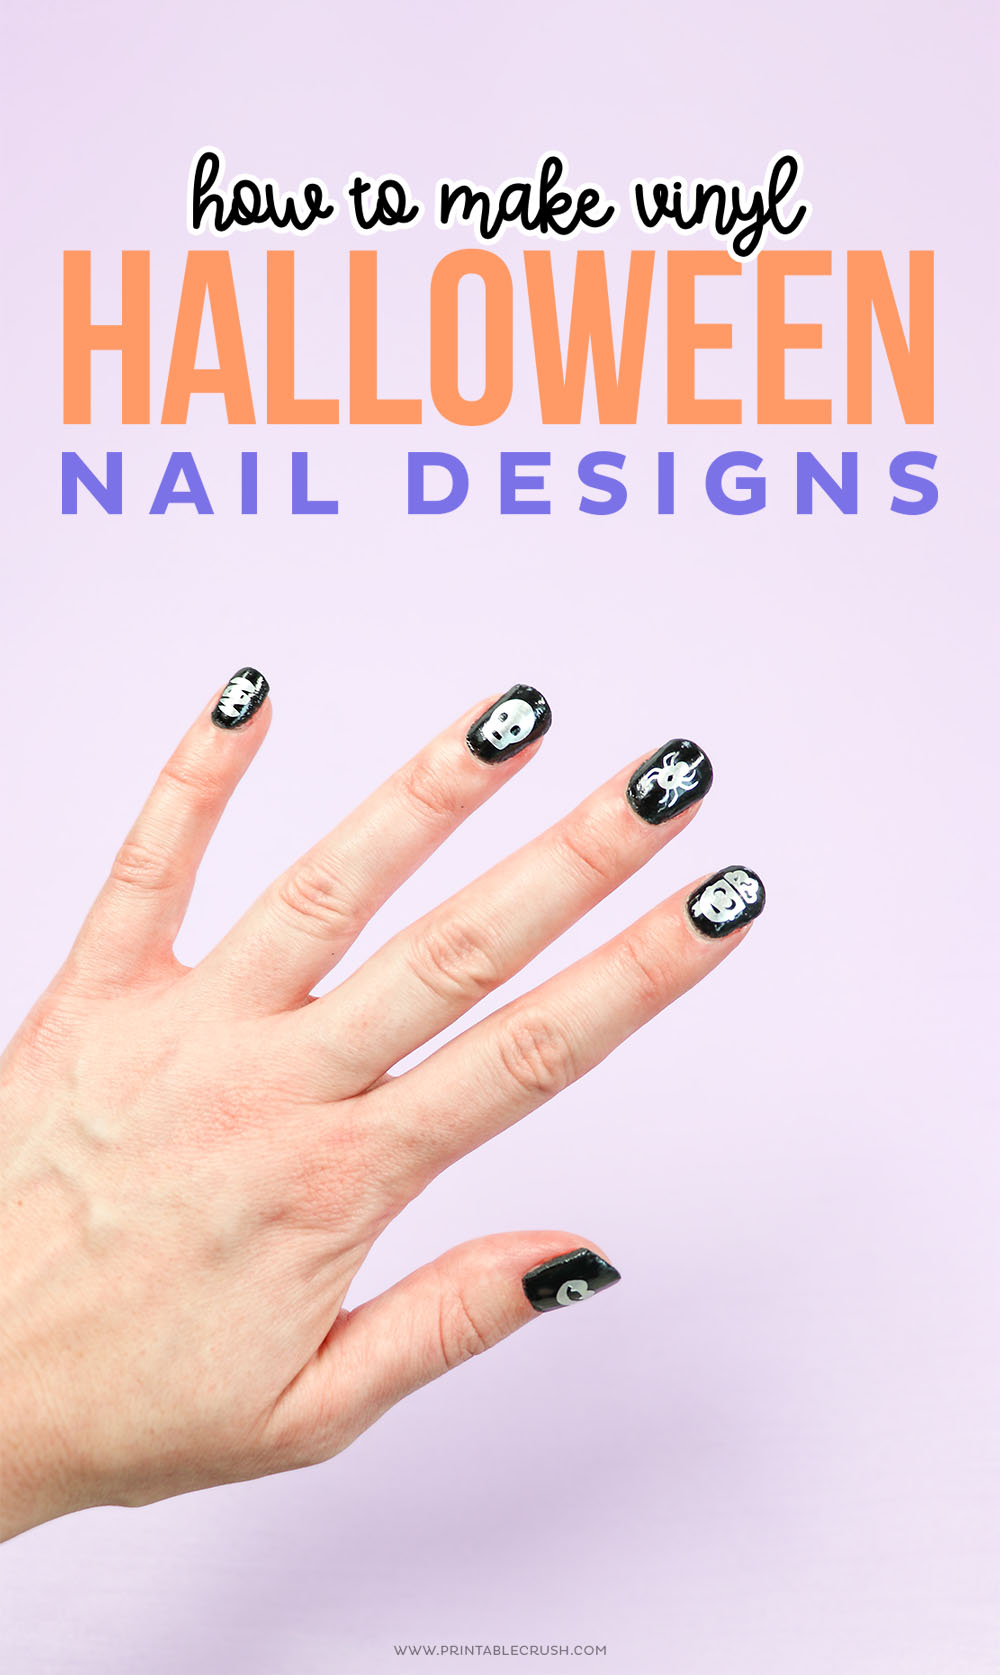 How to Make Vinyl Halloween Nail Designs - Printable Crush